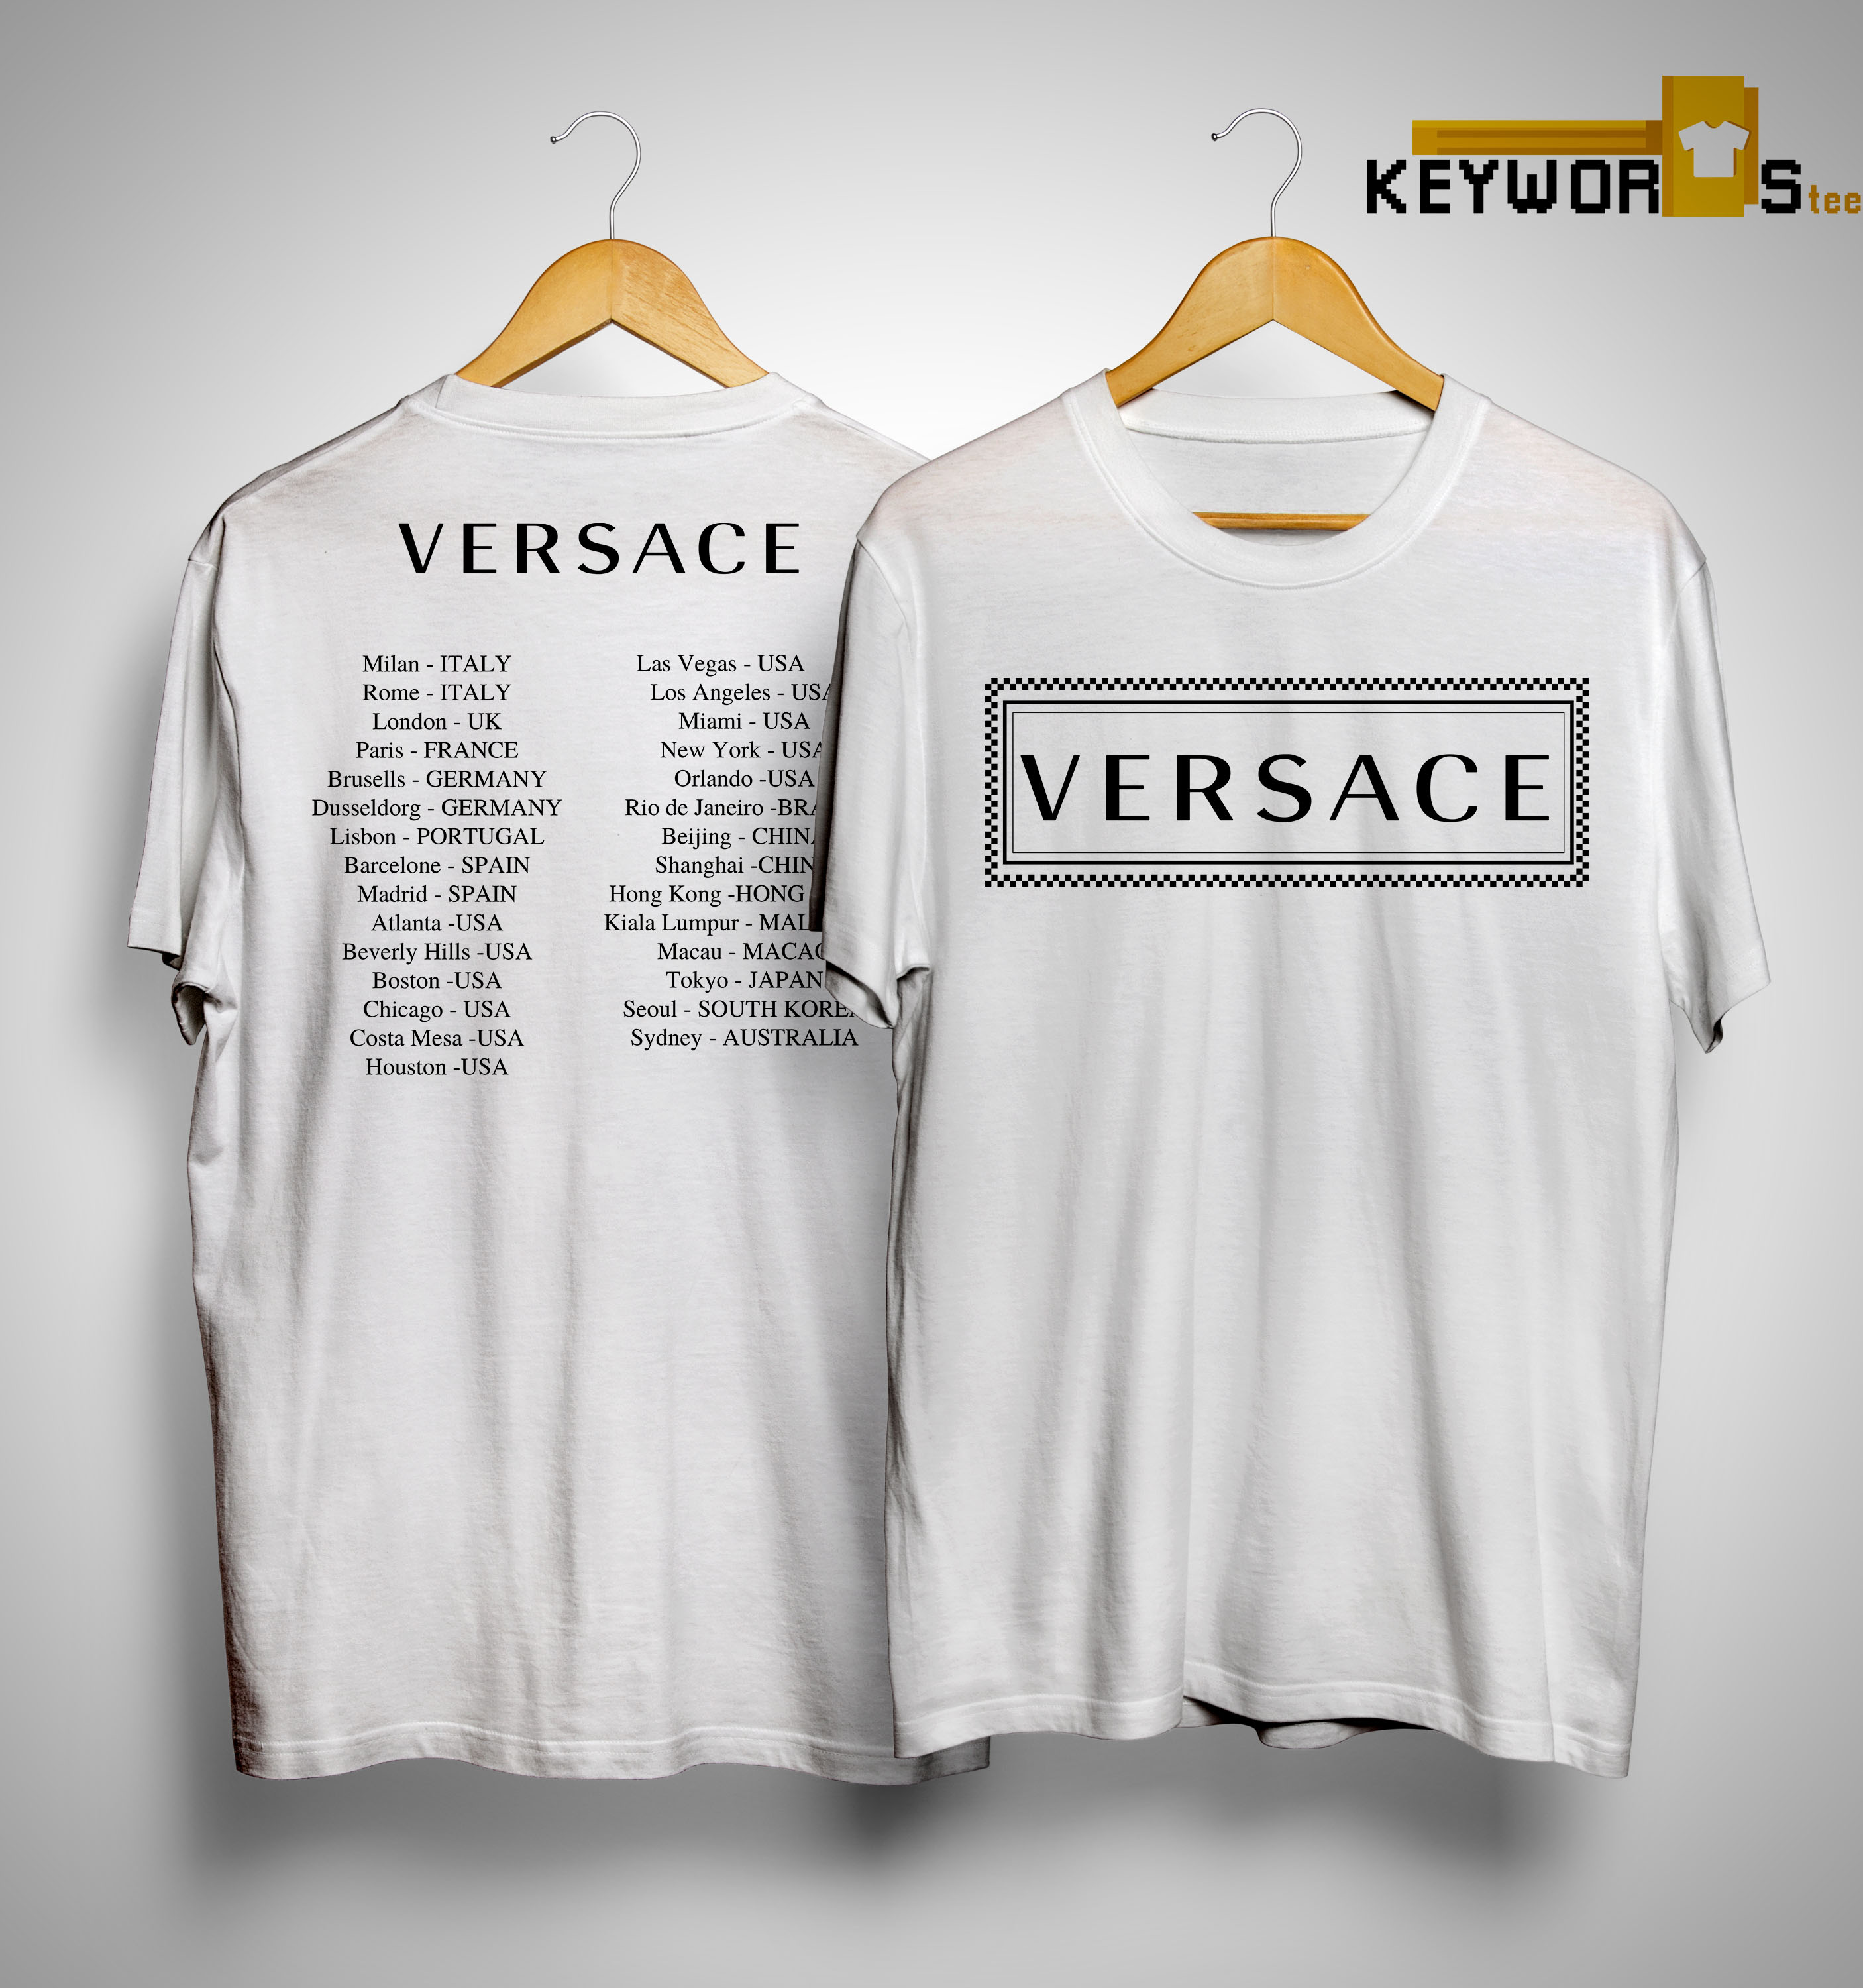 Versace T Shirt Controversy